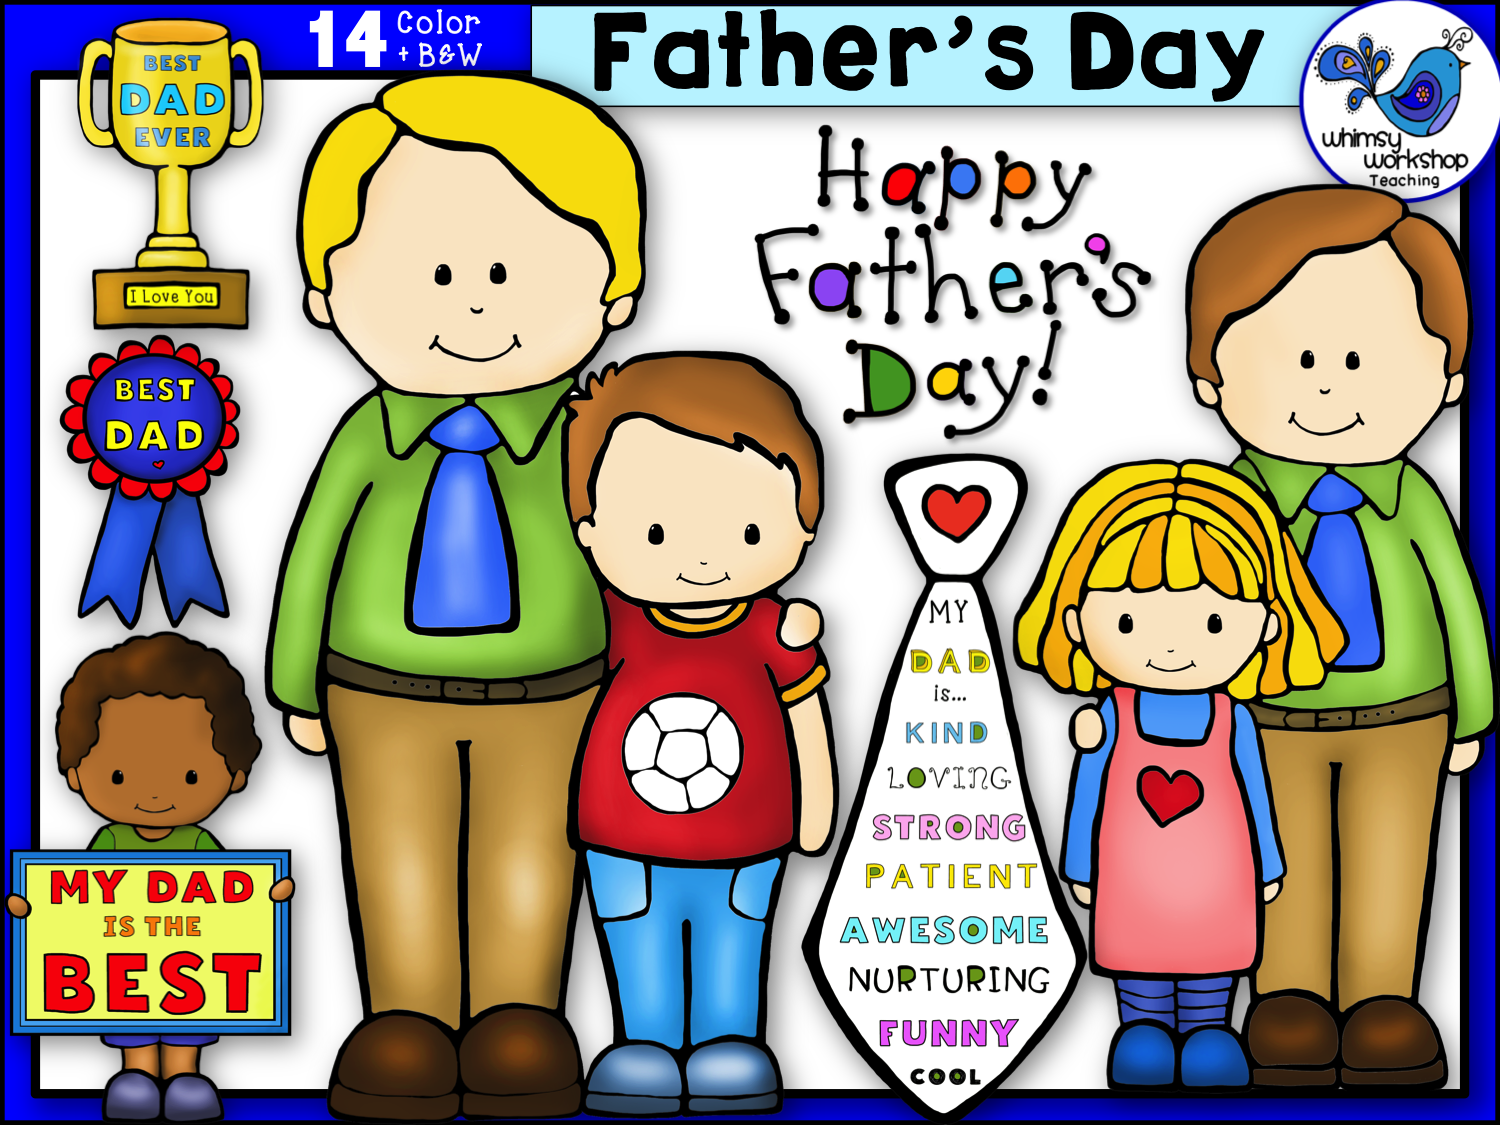 hight resolution of free new set of father s day clip art 14 graphics in color and black and white whimsy workshop teaching